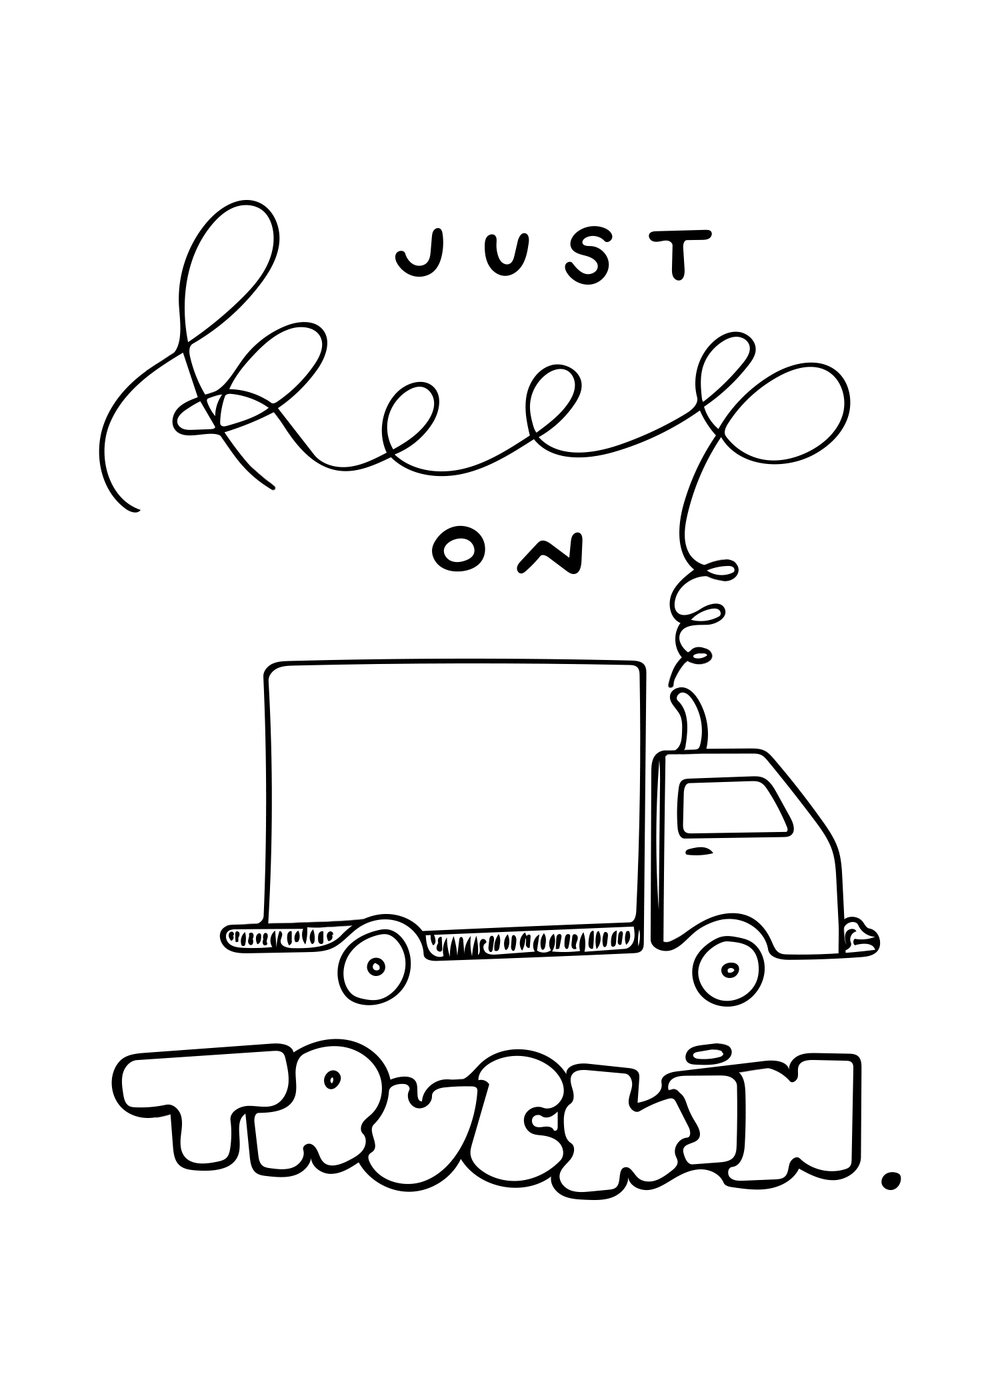 Just Keep on Truckin.jpg